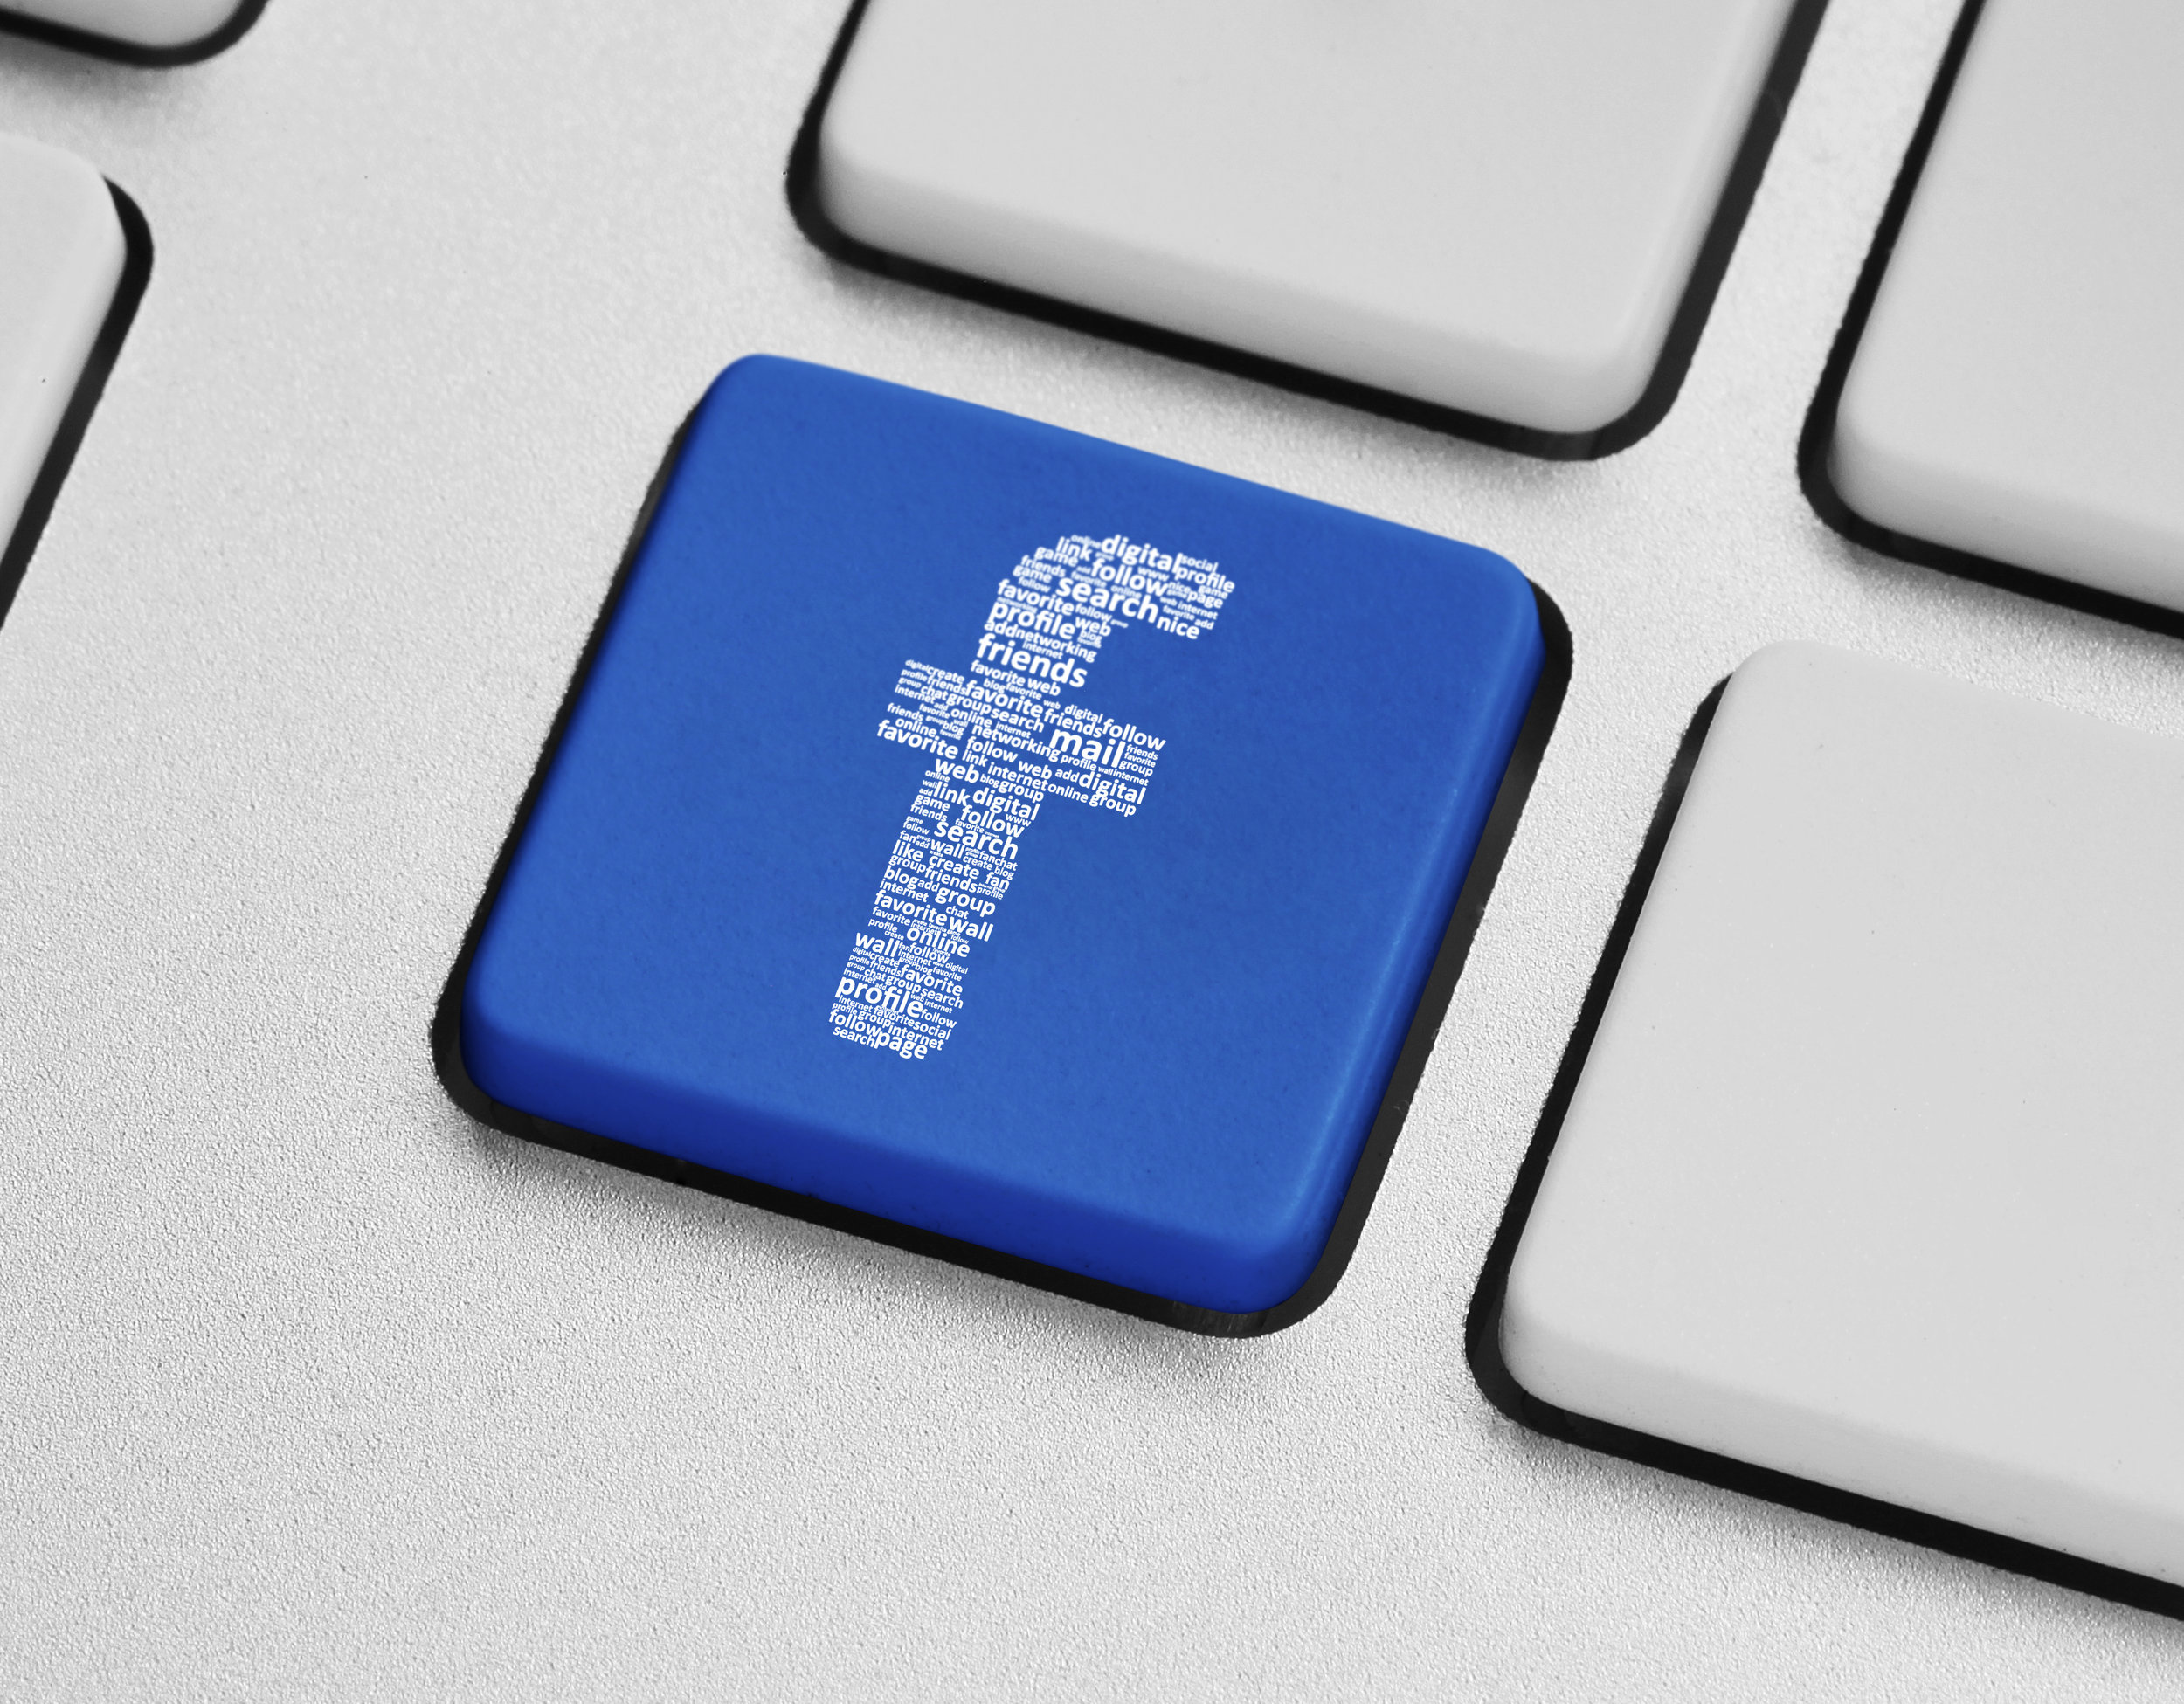 Major security breach - Facebook believe up to 50 million users accounts have been breached…